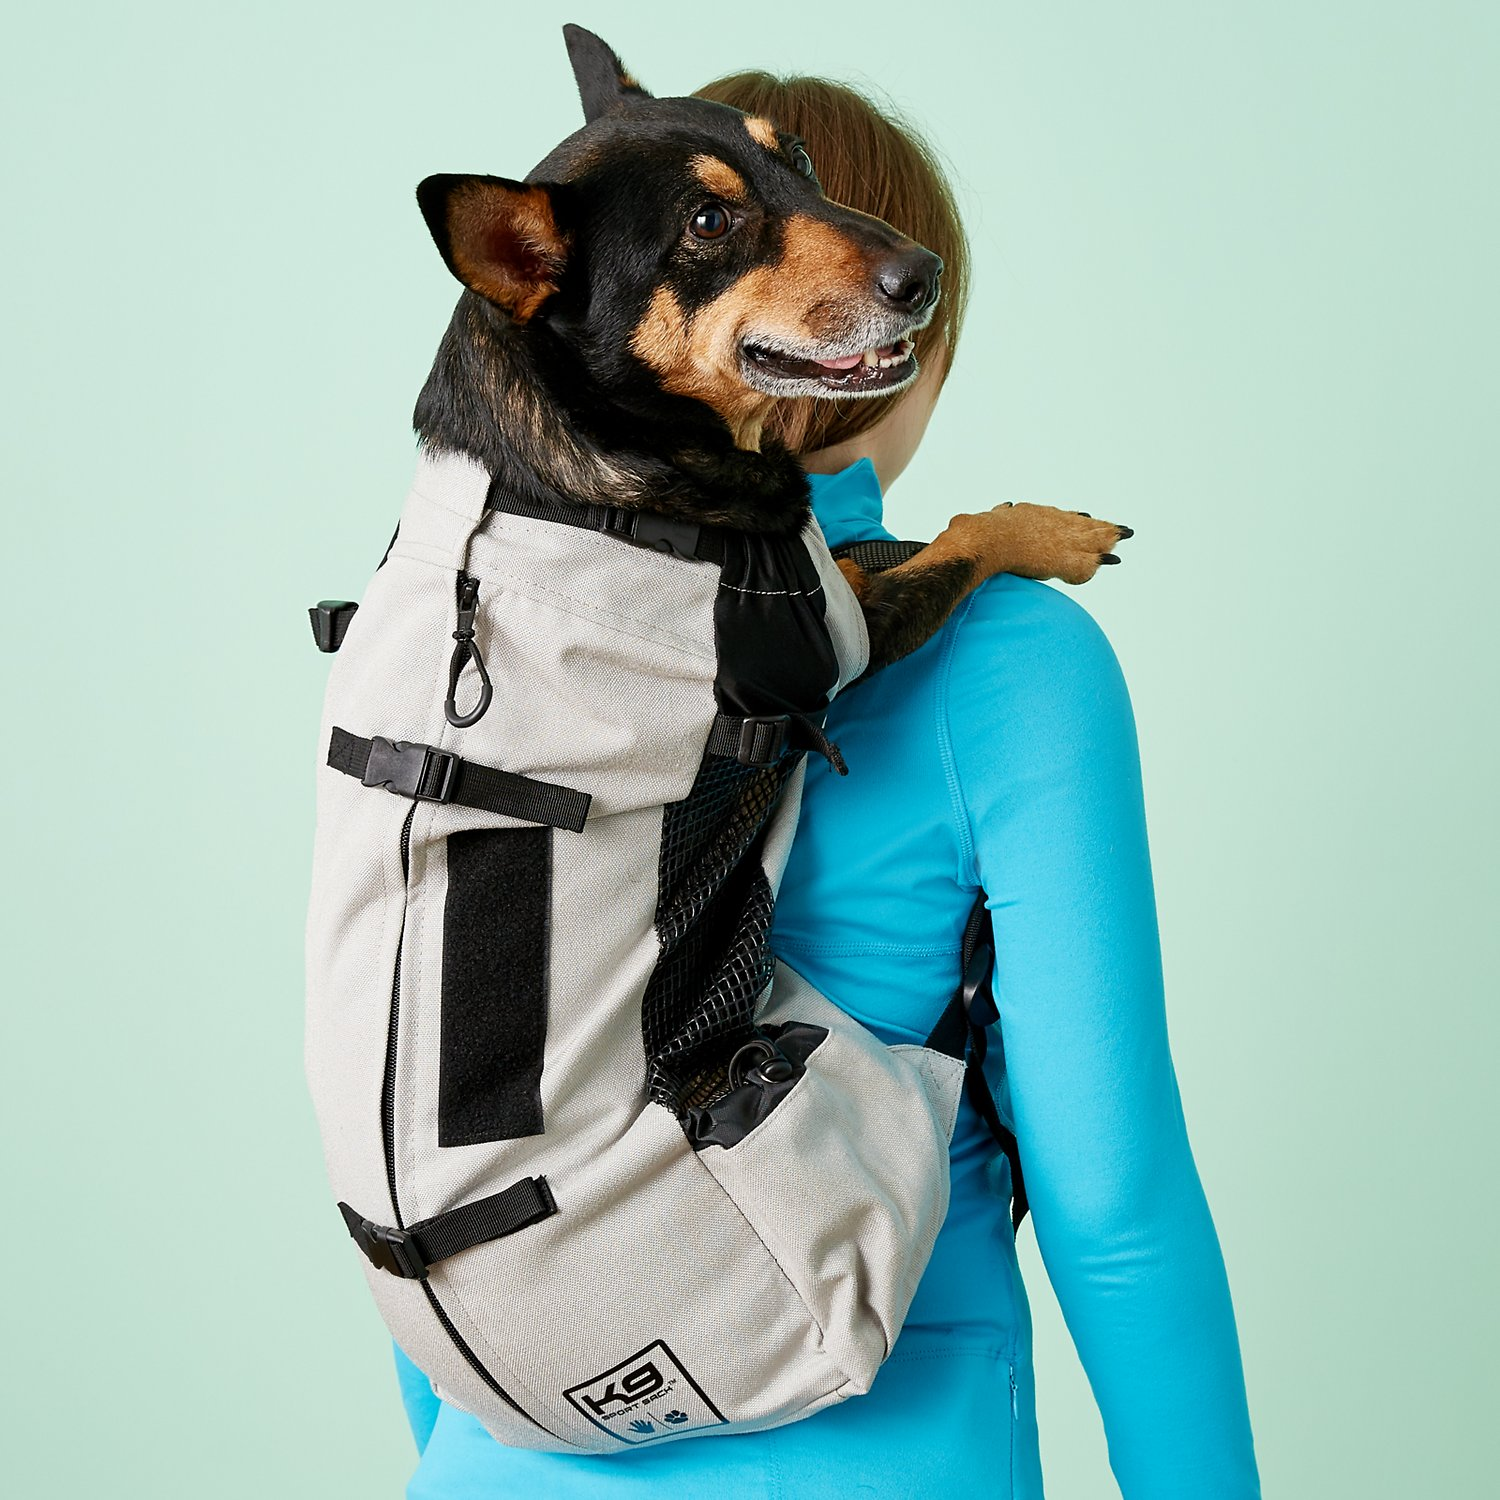 Air Travel With Small Dog